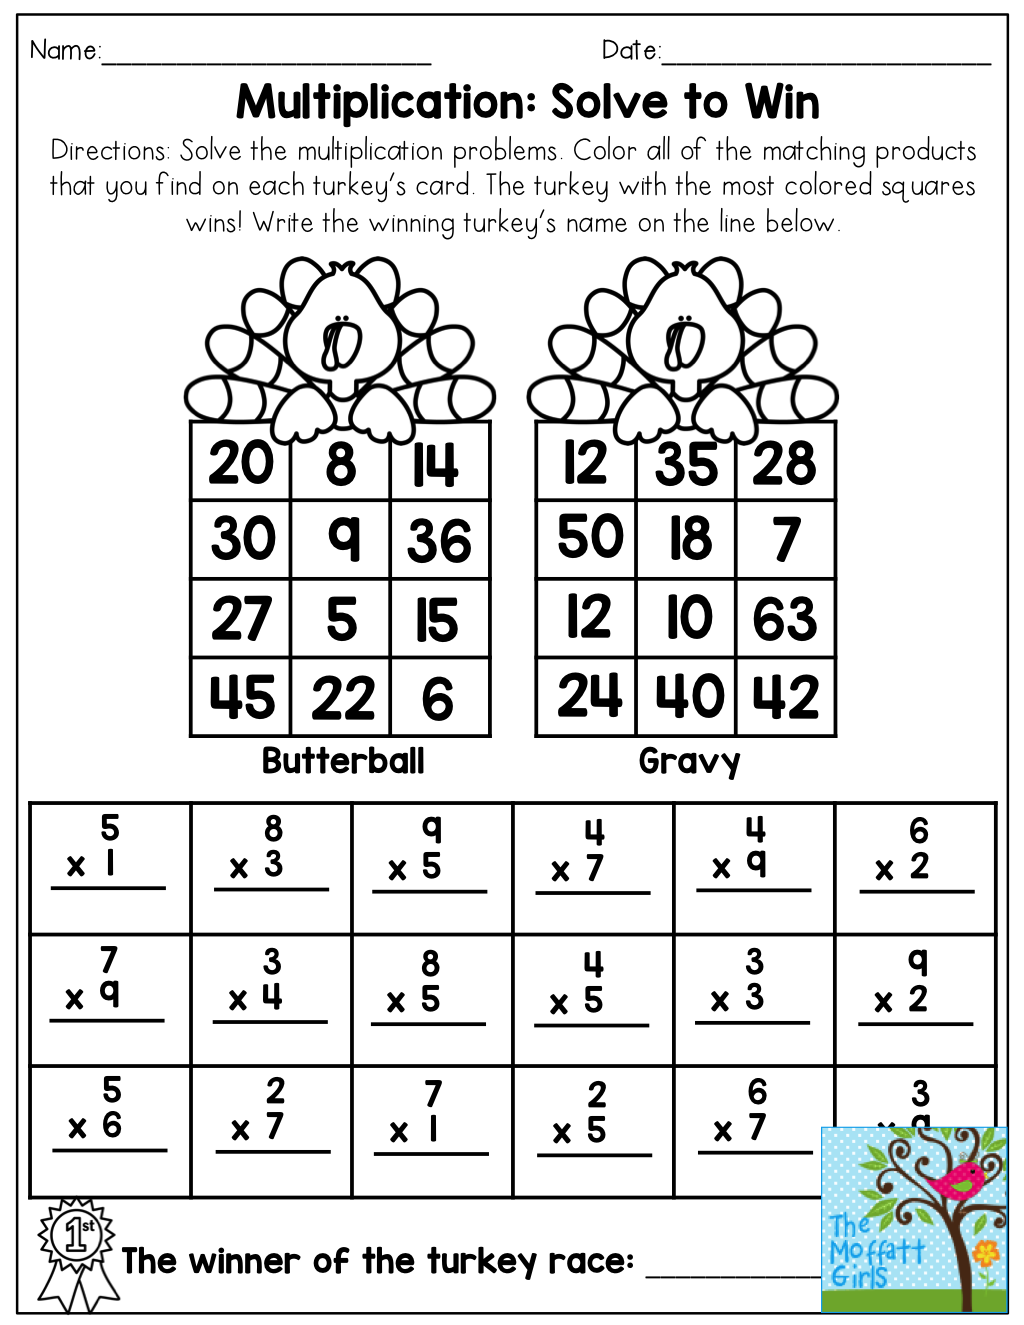 multiplication solve to win see which turkey wins the race by solving the math problems and. Black Bedroom Furniture Sets. Home Design Ideas